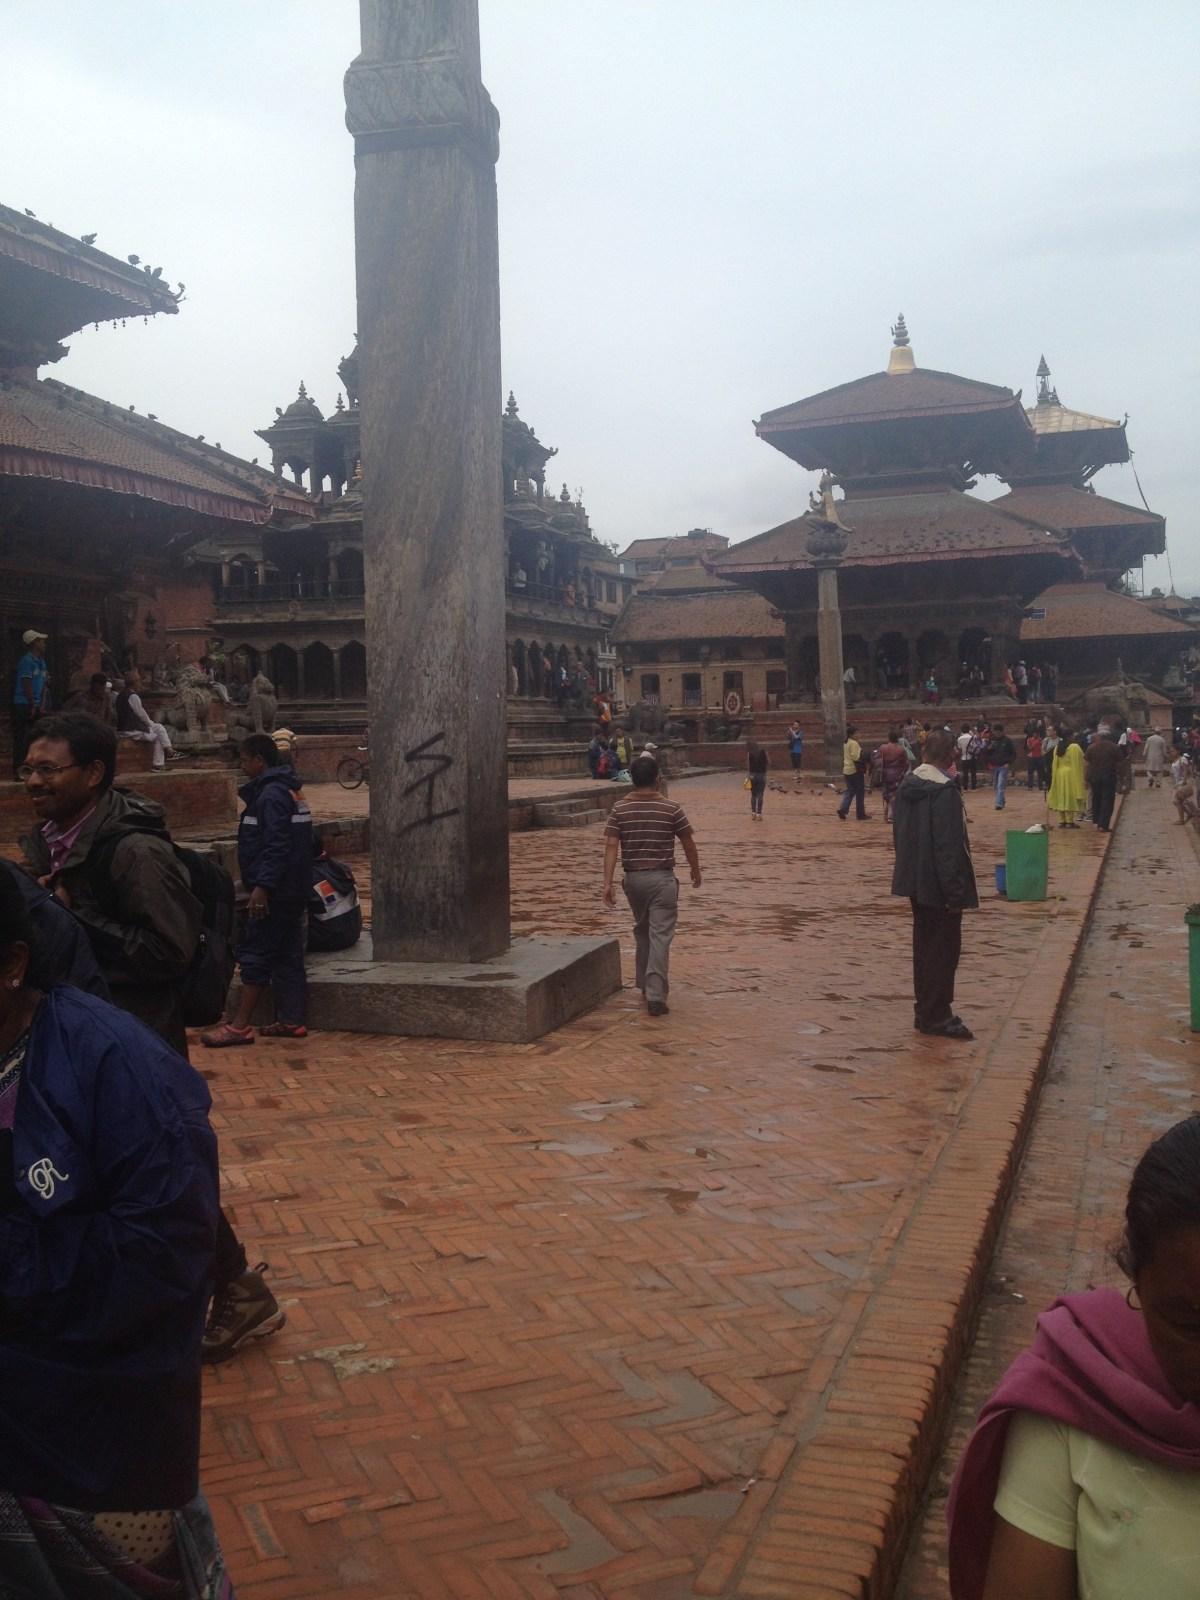 Nepal Travel: Tour of Kathmandu Durbar Square (2014)